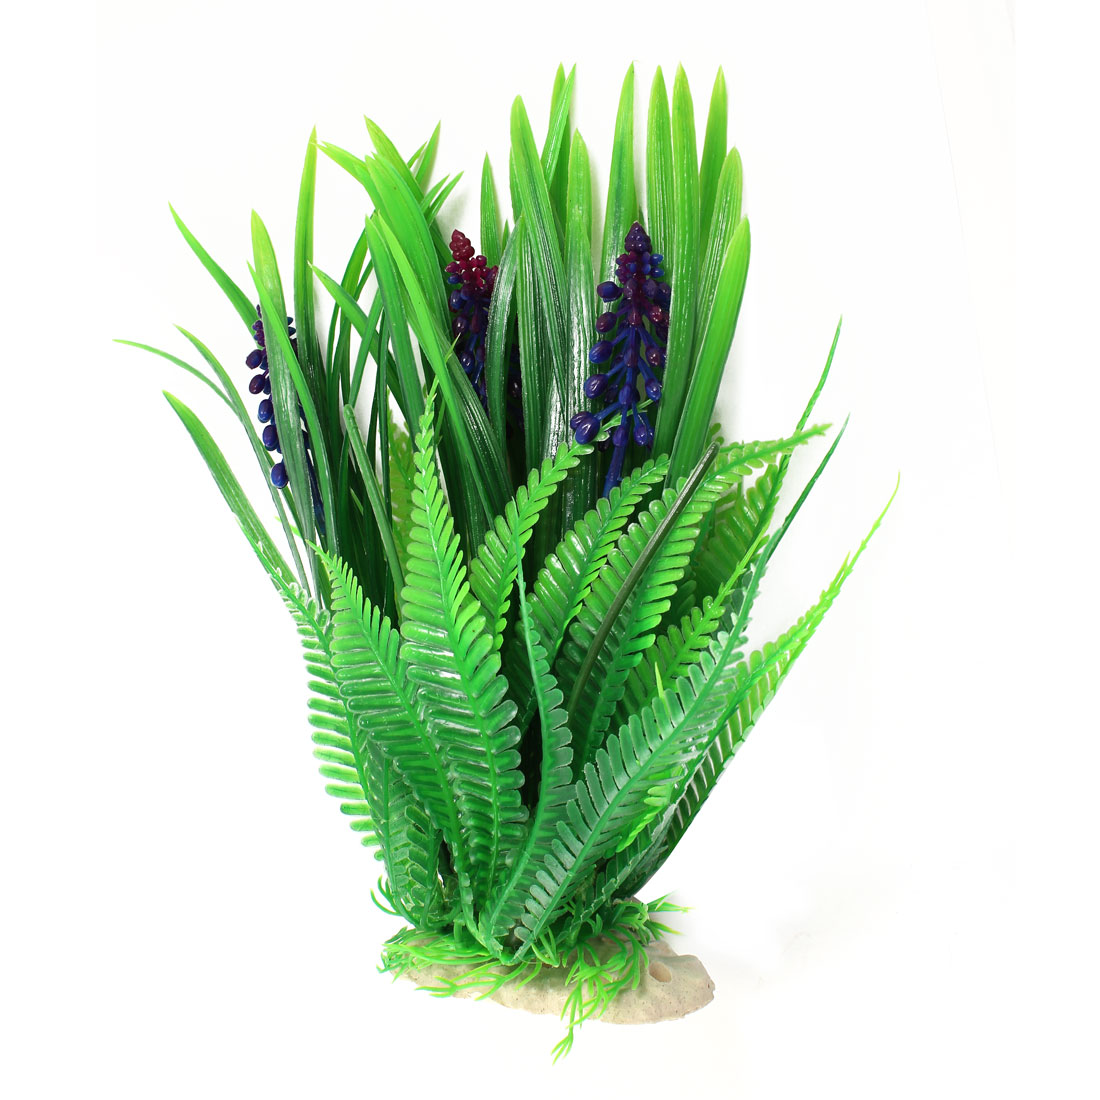 Aquarium Decoration Green Emulational Plastic Grass Plant 23cm High